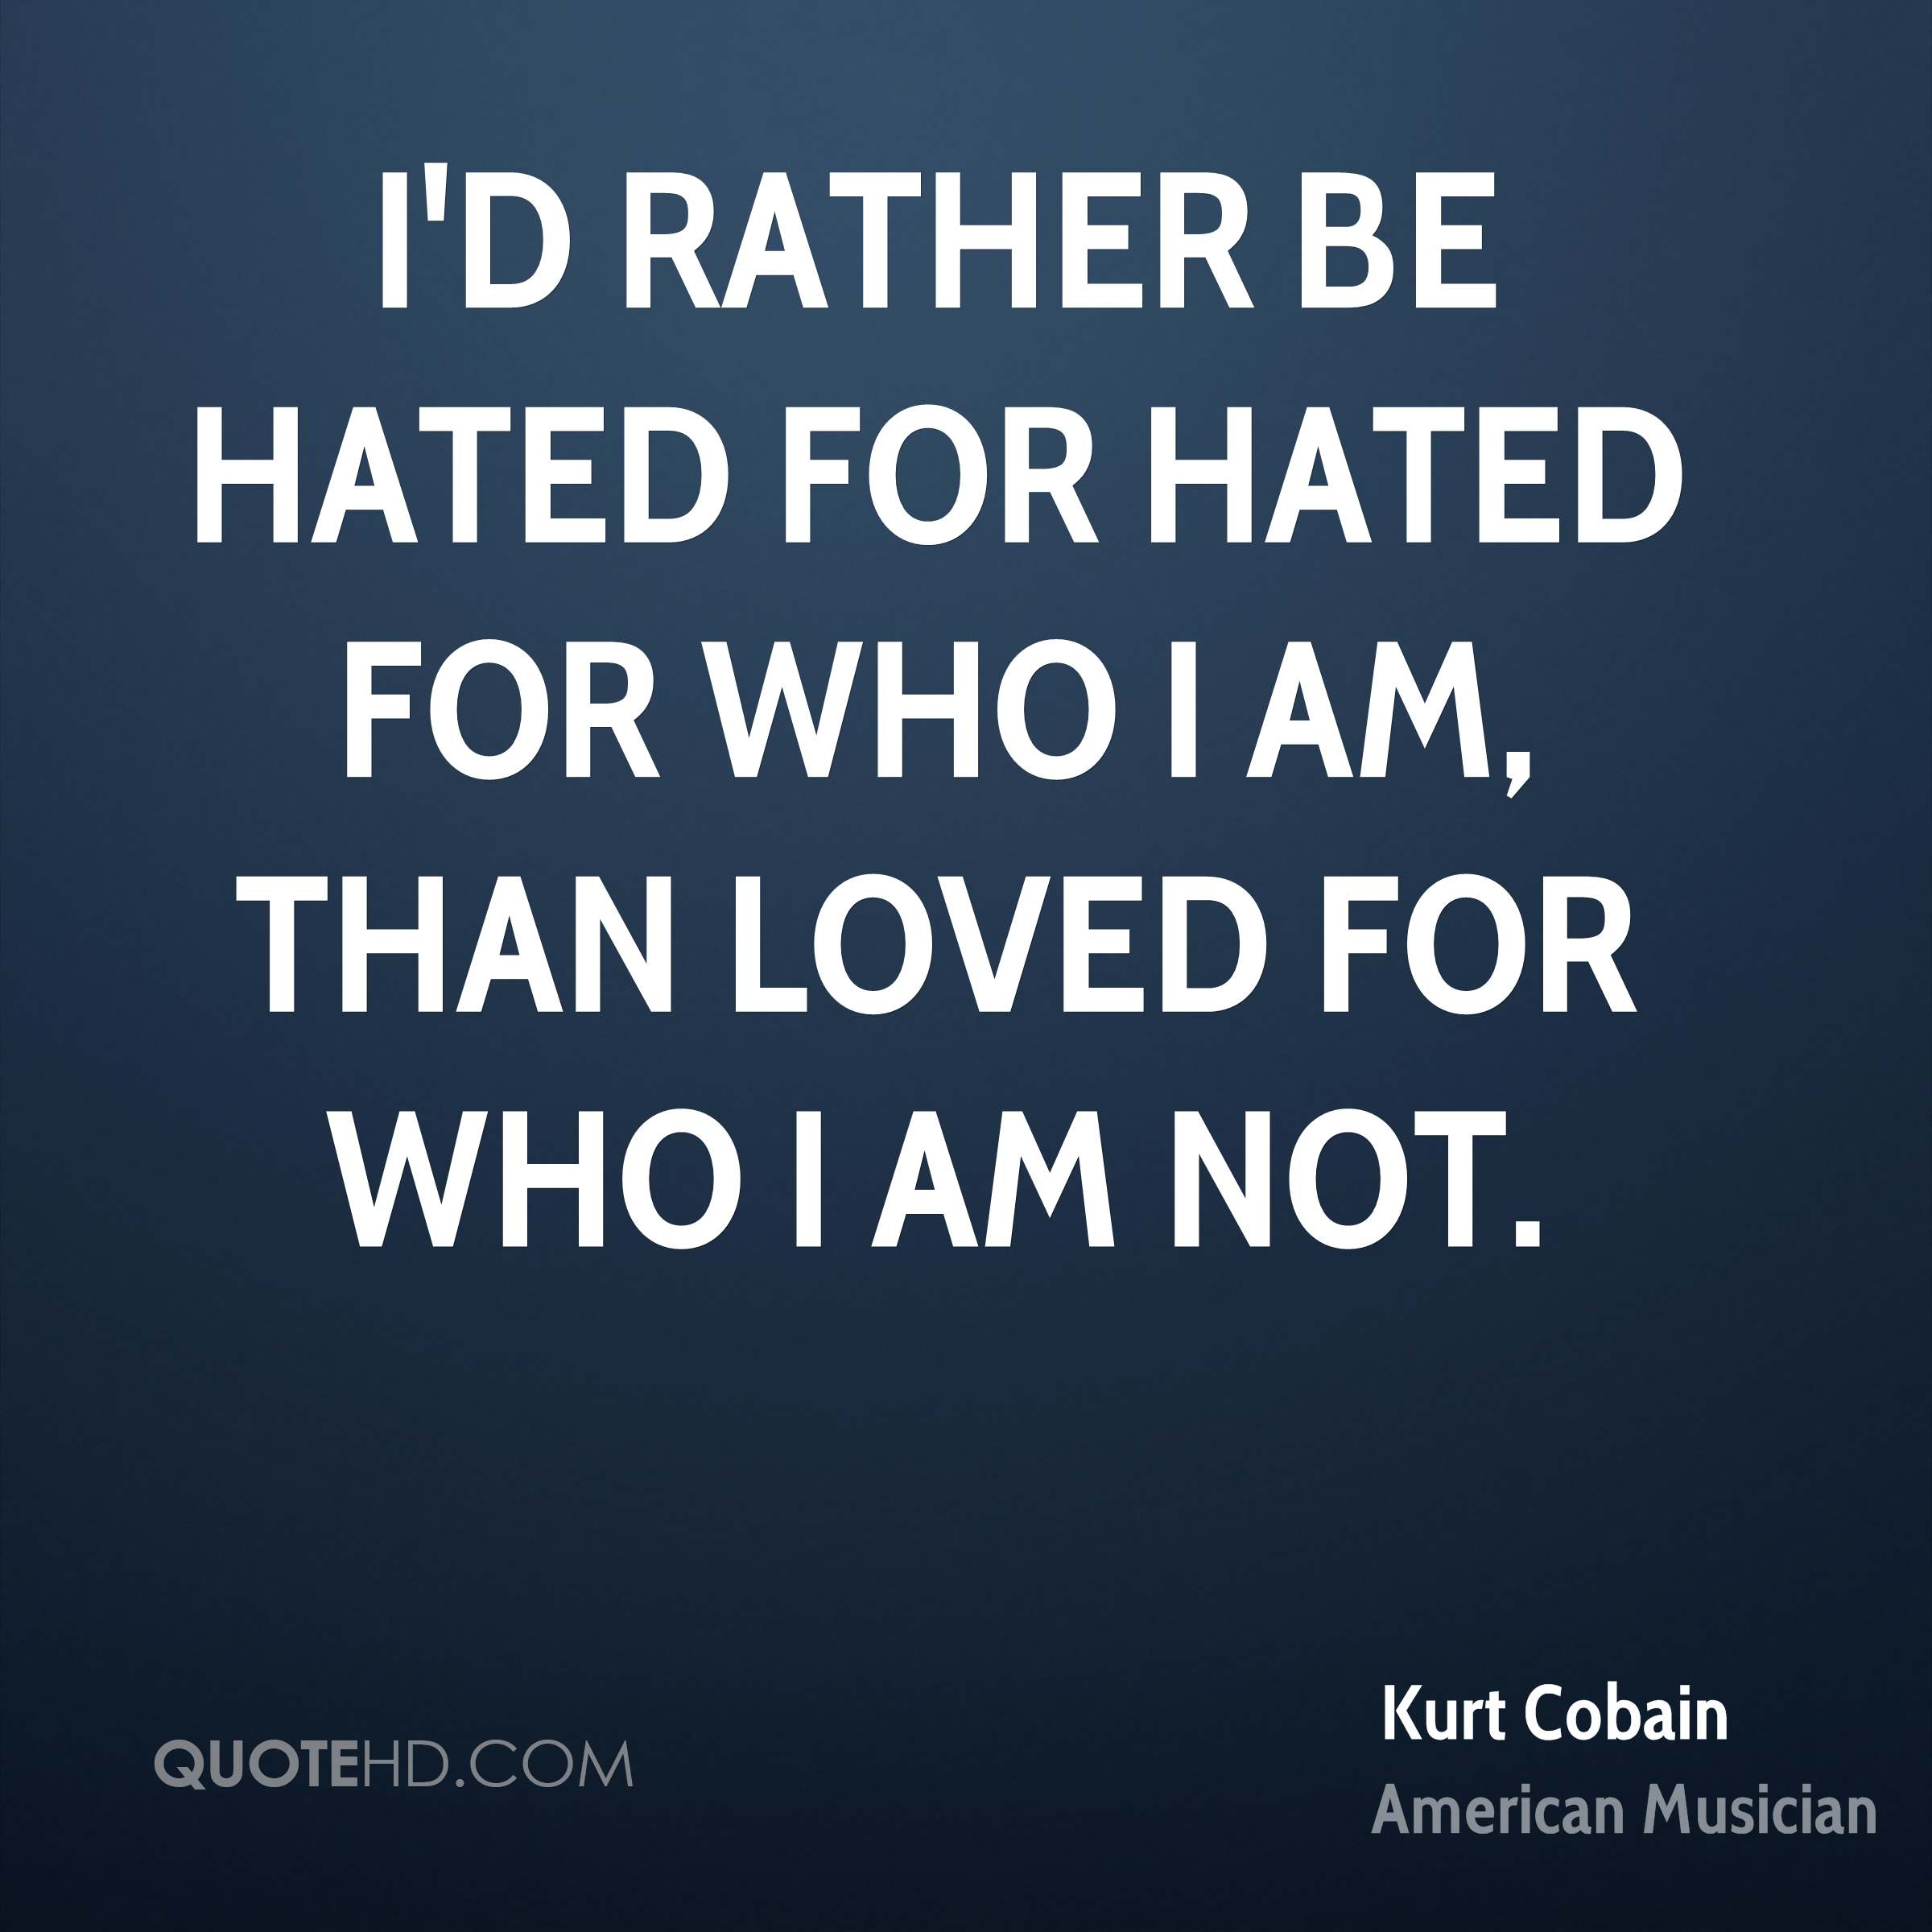 I'd rather be hated for hated for who I am, than loved for who I am not.